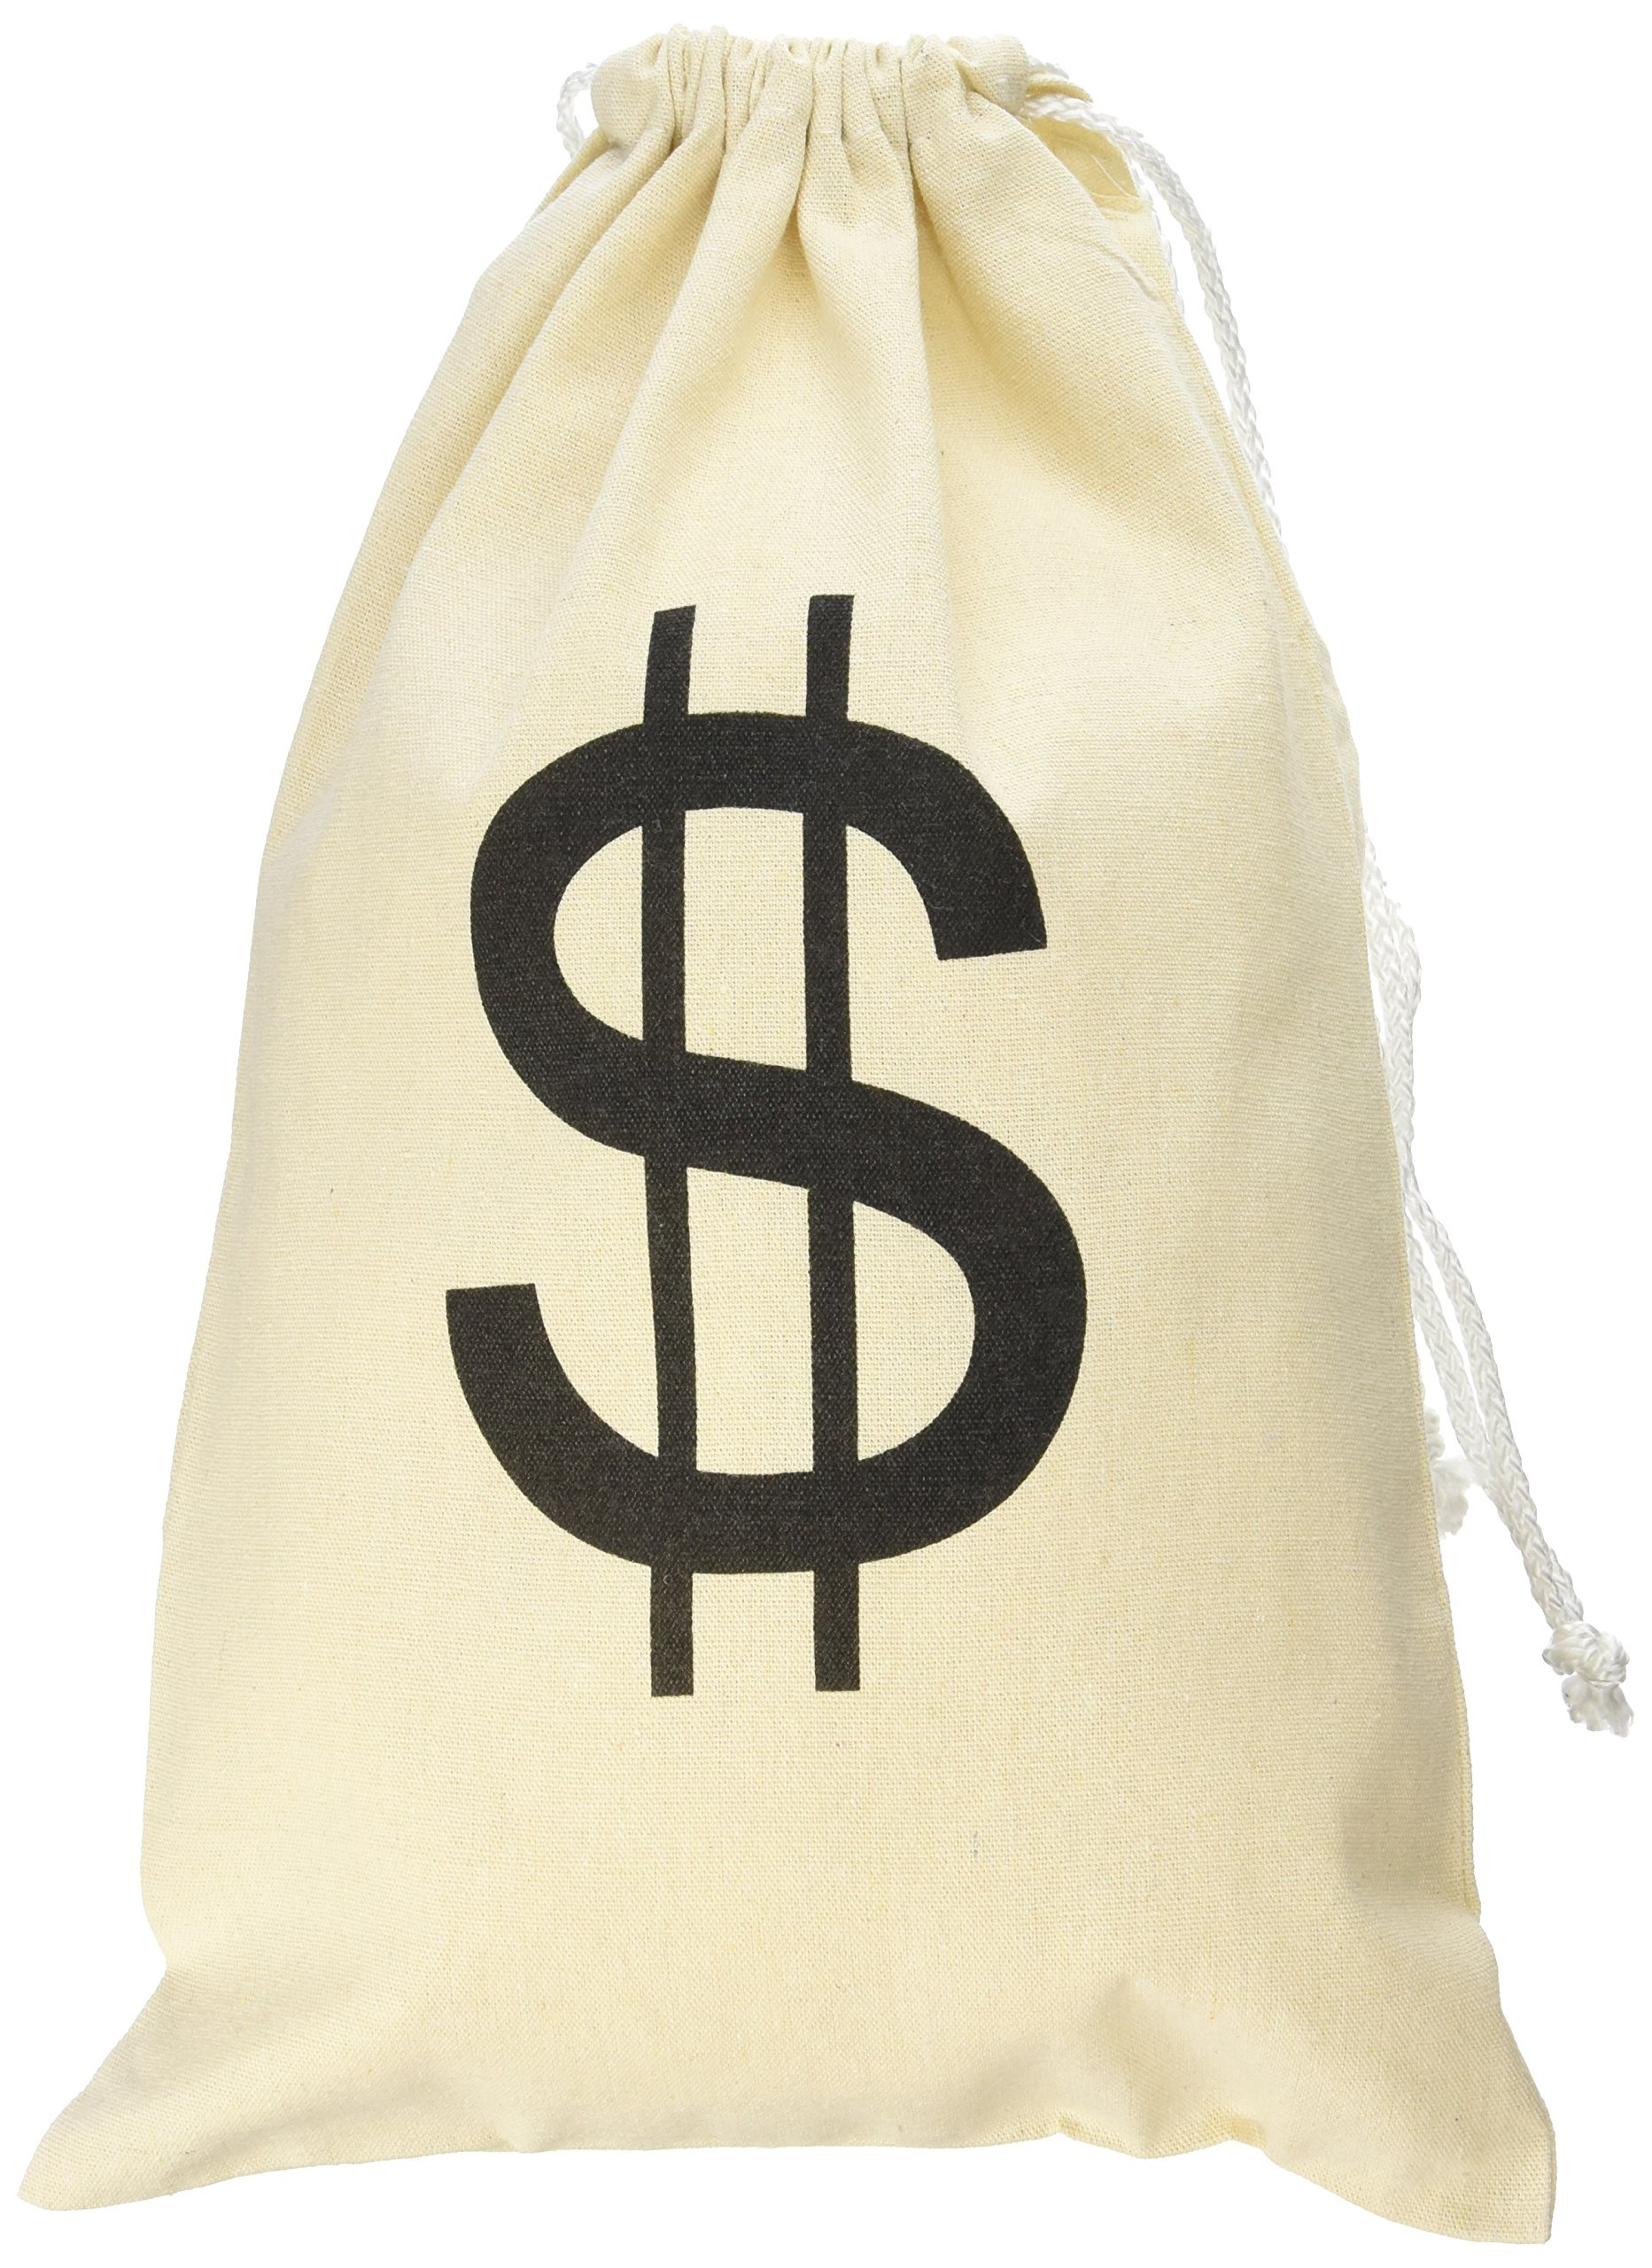 Super Z Outlet Large Canvas Natural Money Bag Pouch with Drawstring Closure and Dollar Sign Design for Toy Party Favors, Bank Robber Cowboy Pirate Theme, Carrying Case Sack